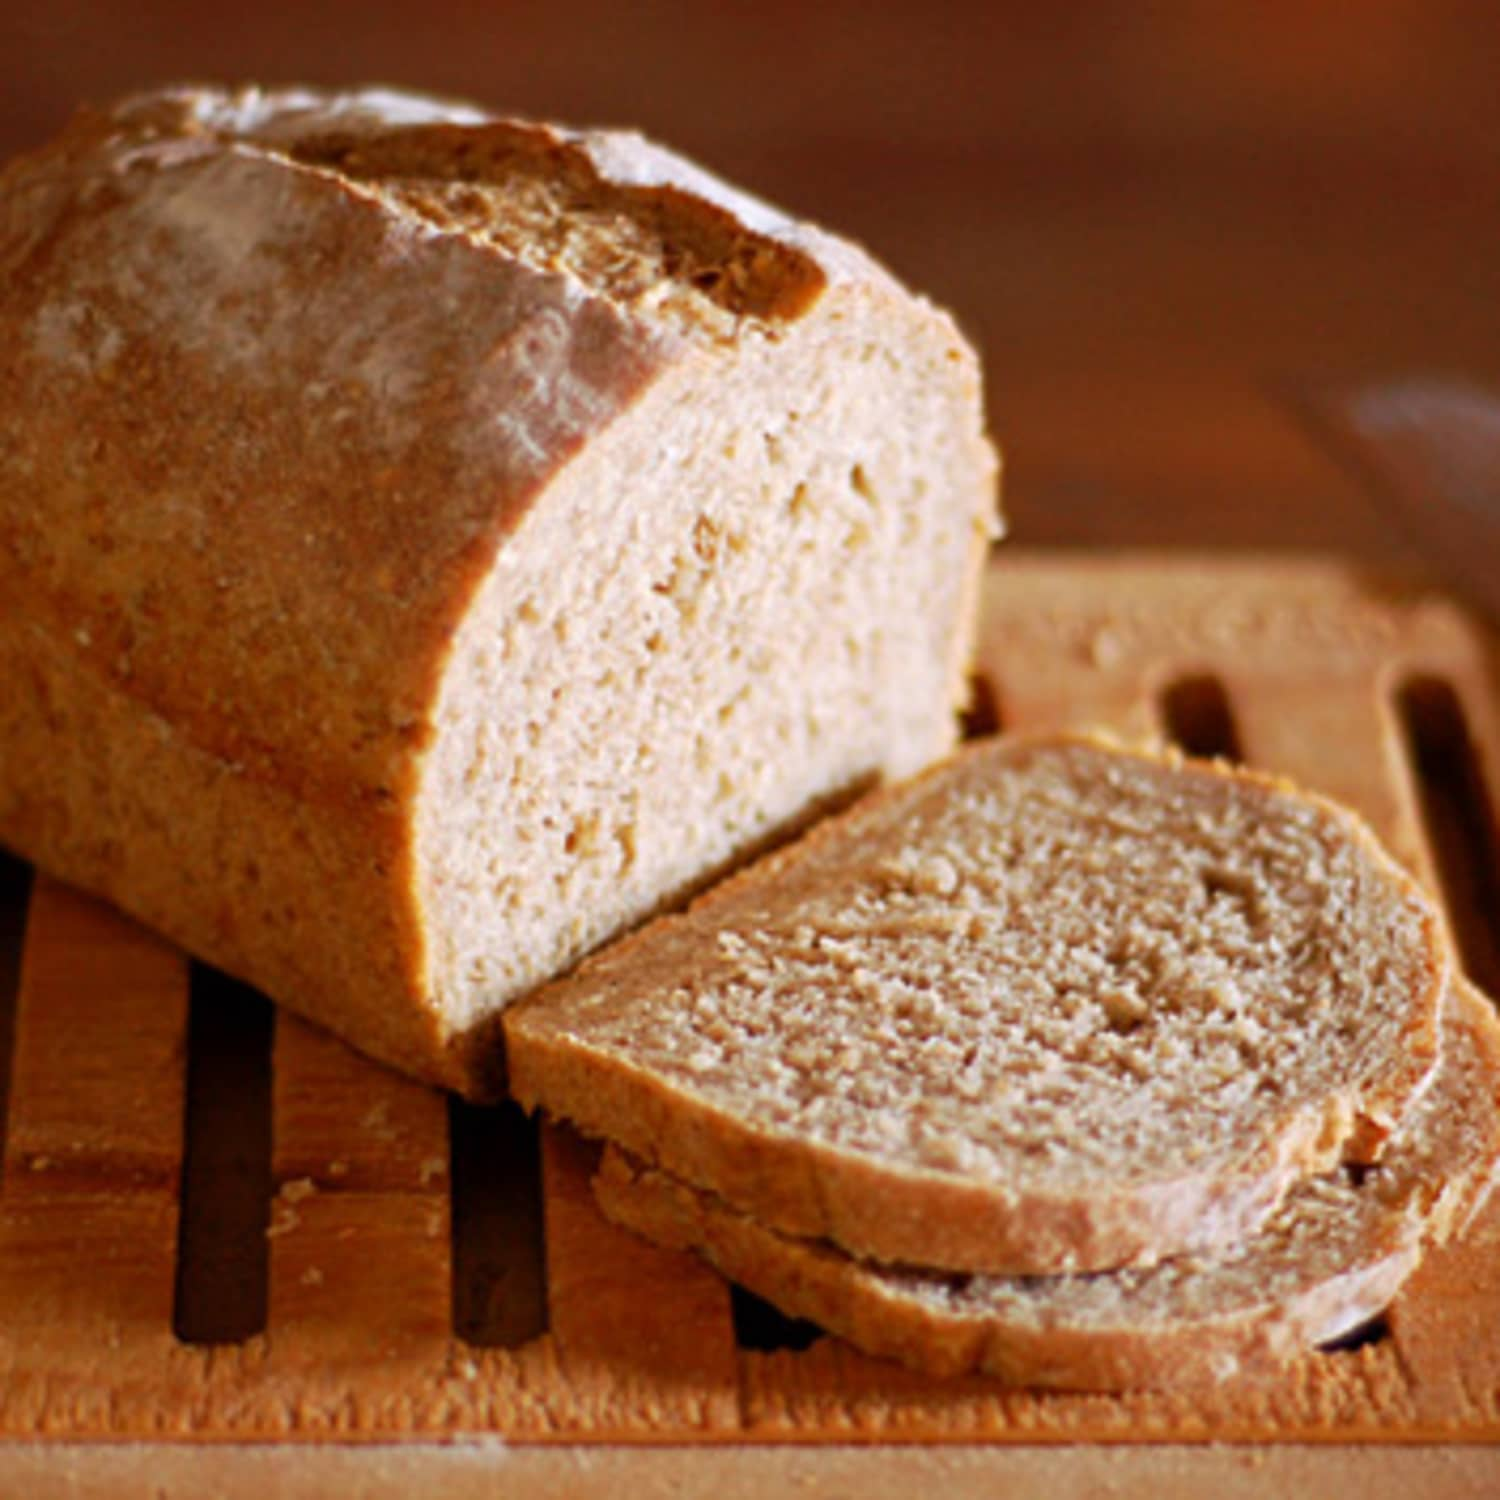 The Best Way to Make Softer and Fluffier Whole Wheat Bread